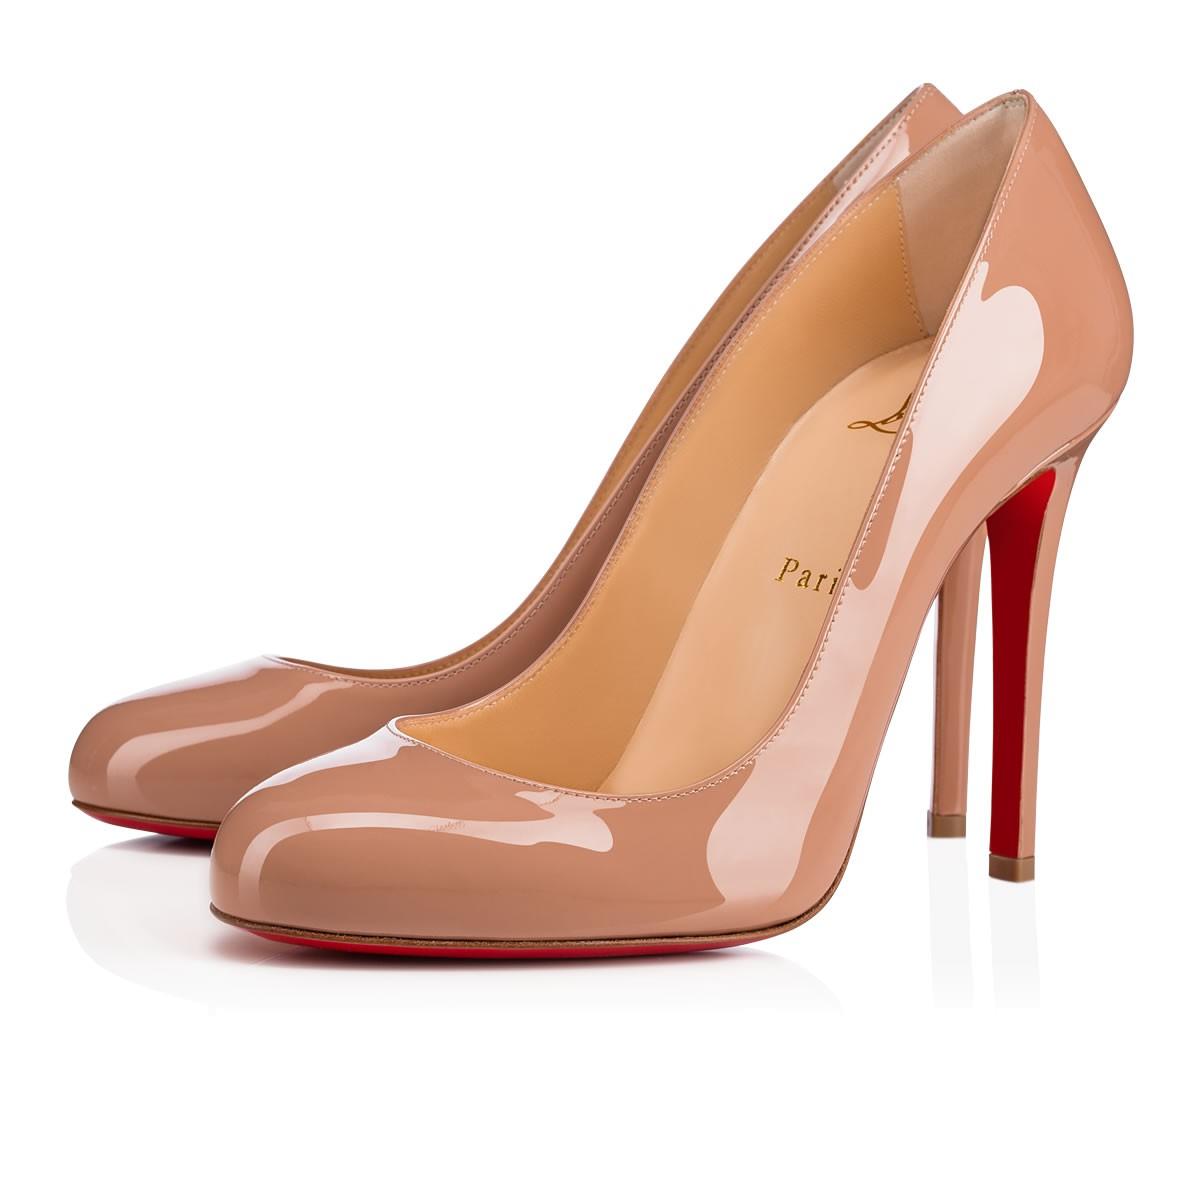 best loved b70a1 2cc99 Fifille 100 Nude Patent Leather - Women Shoes - Christian Louboutin